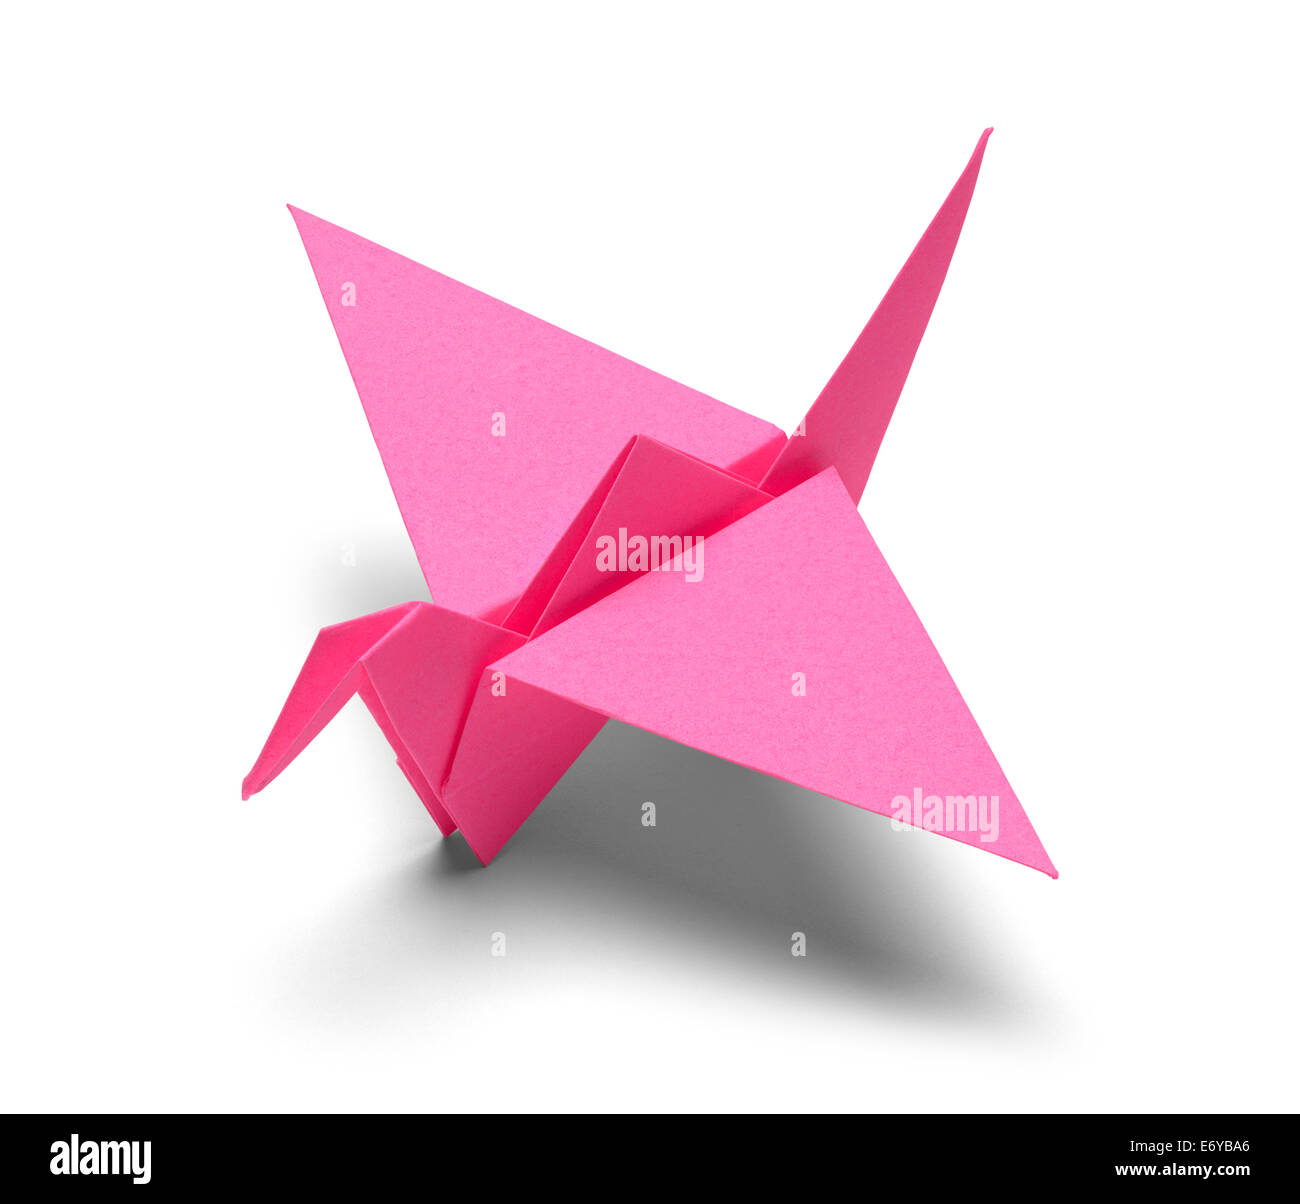 Pink Origami Paper Crane Isolated on White Background. - Stock Image